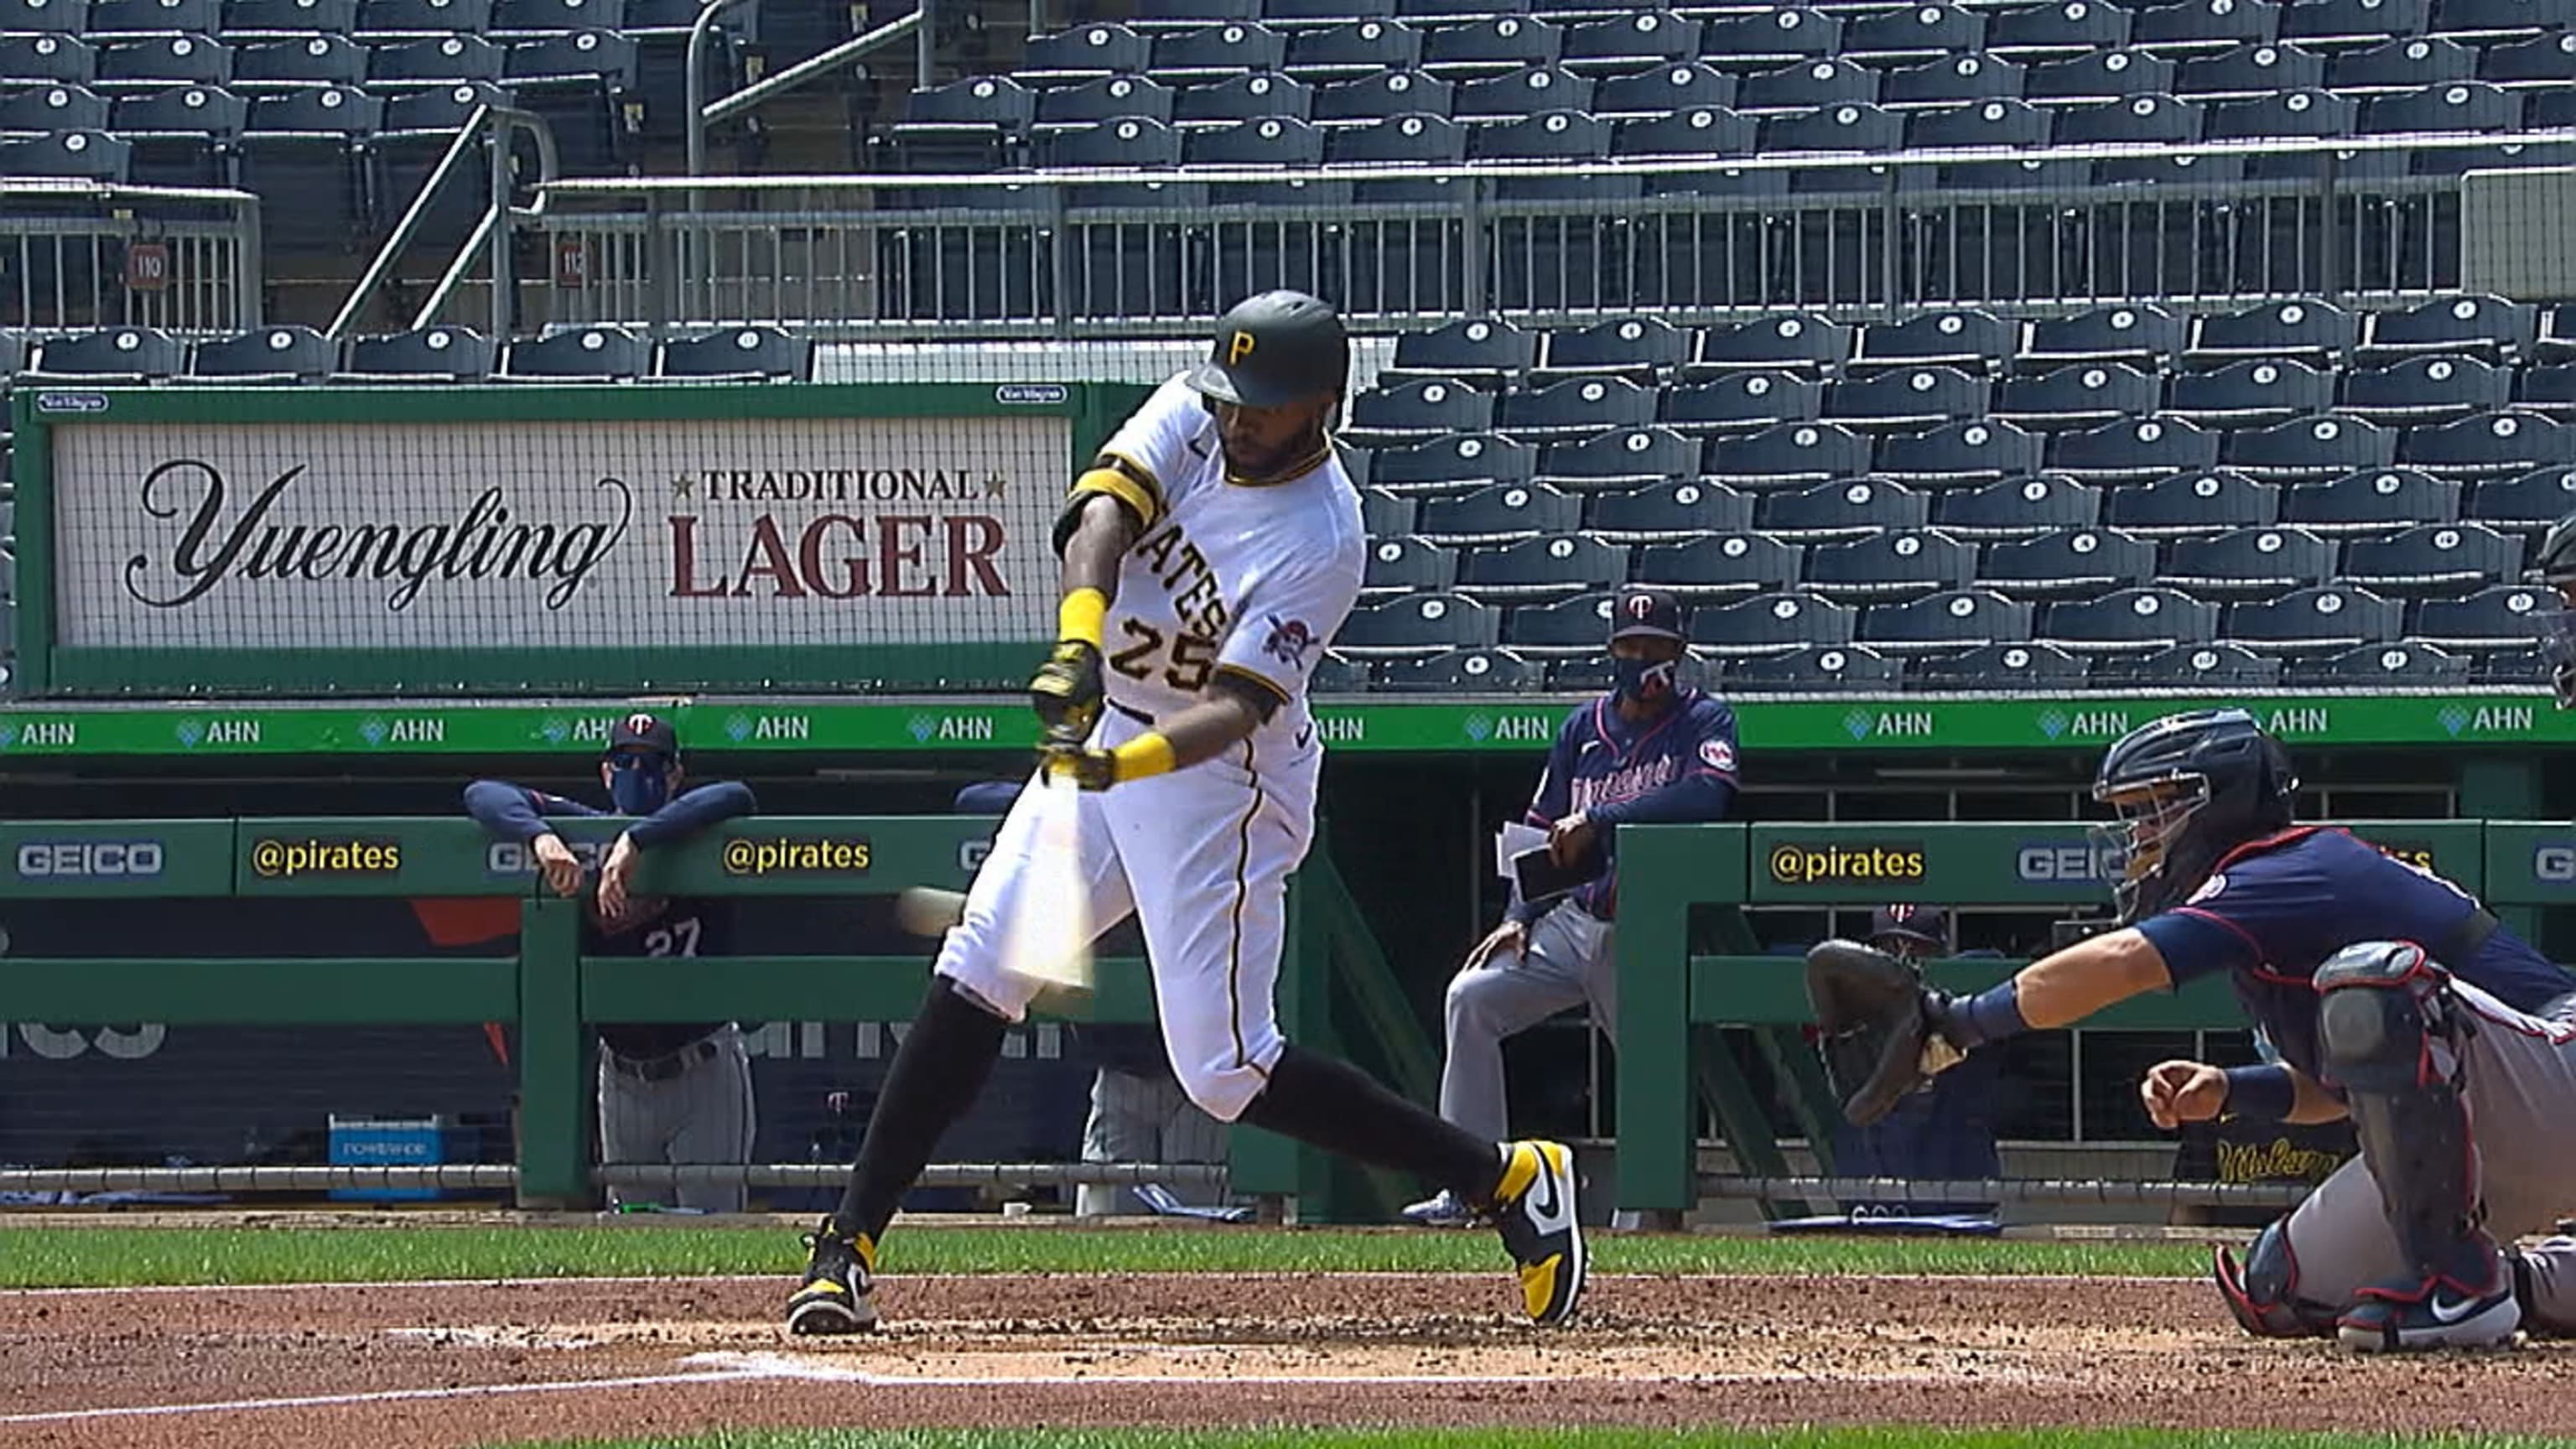 Gregory Polanco da HR de 3 carreras